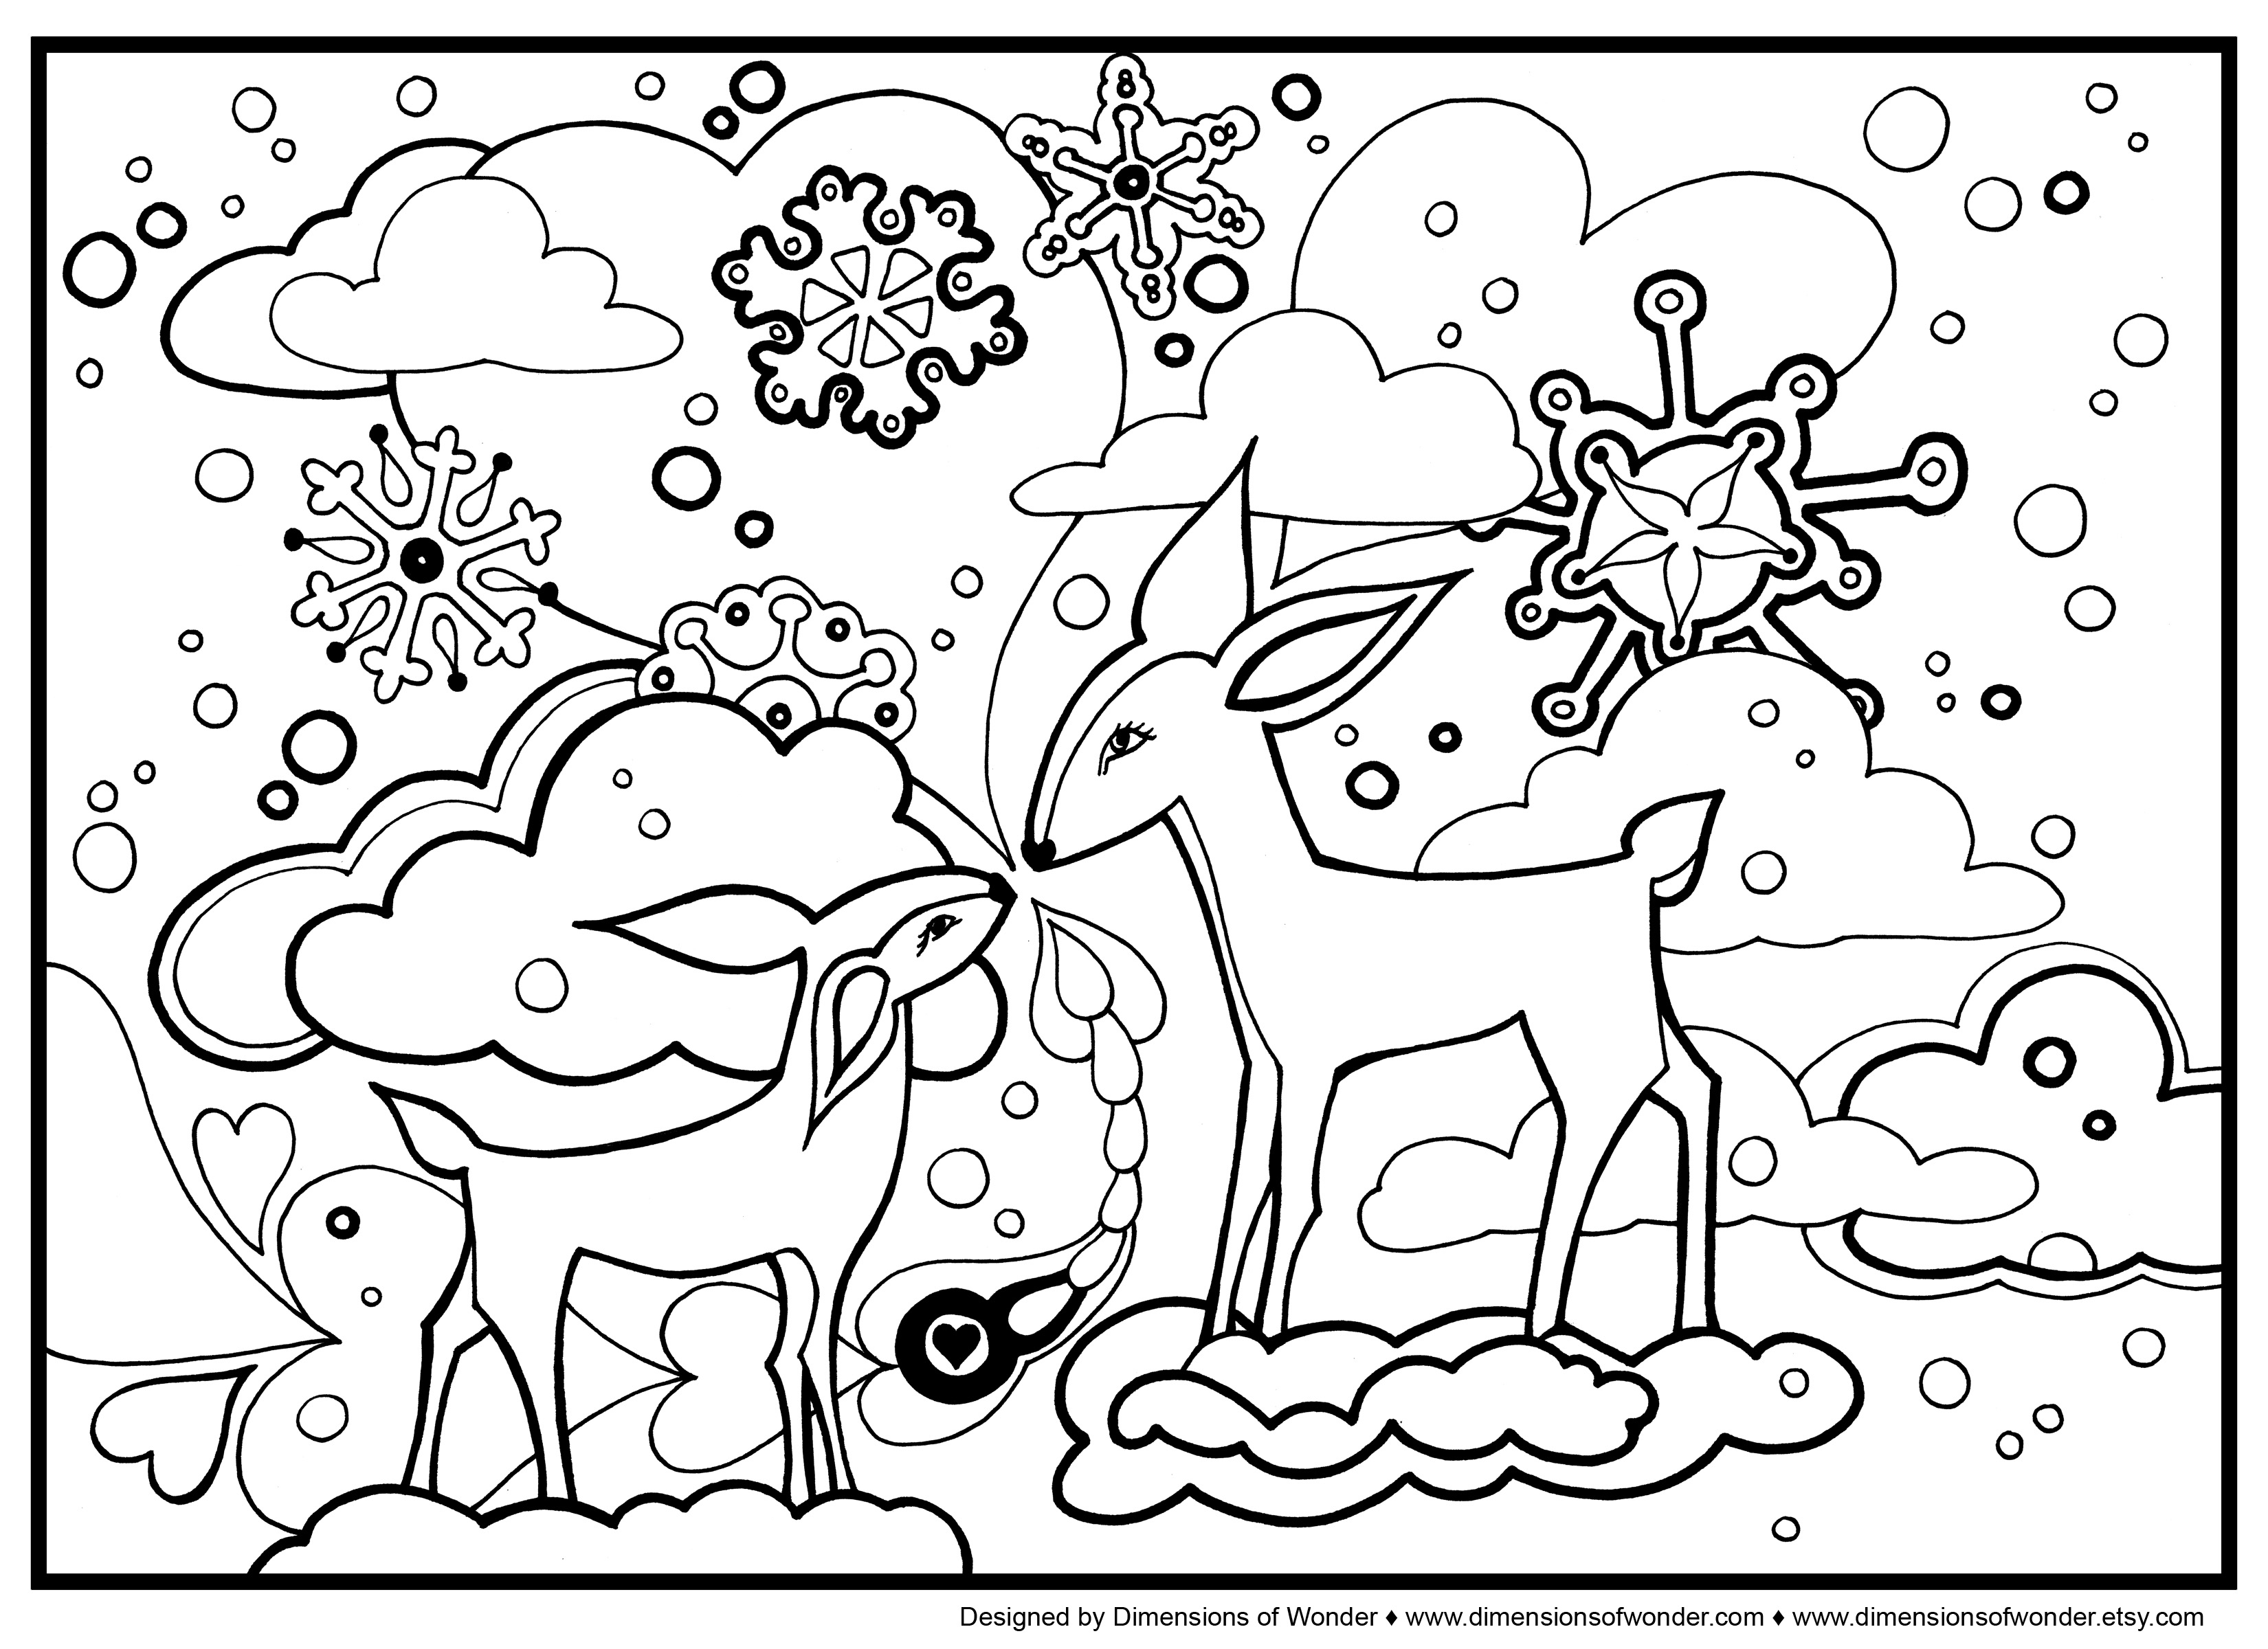 Winter Coloring Pages Printable Coloring Pages Free Winter Coloring Sheets Printable For Kids